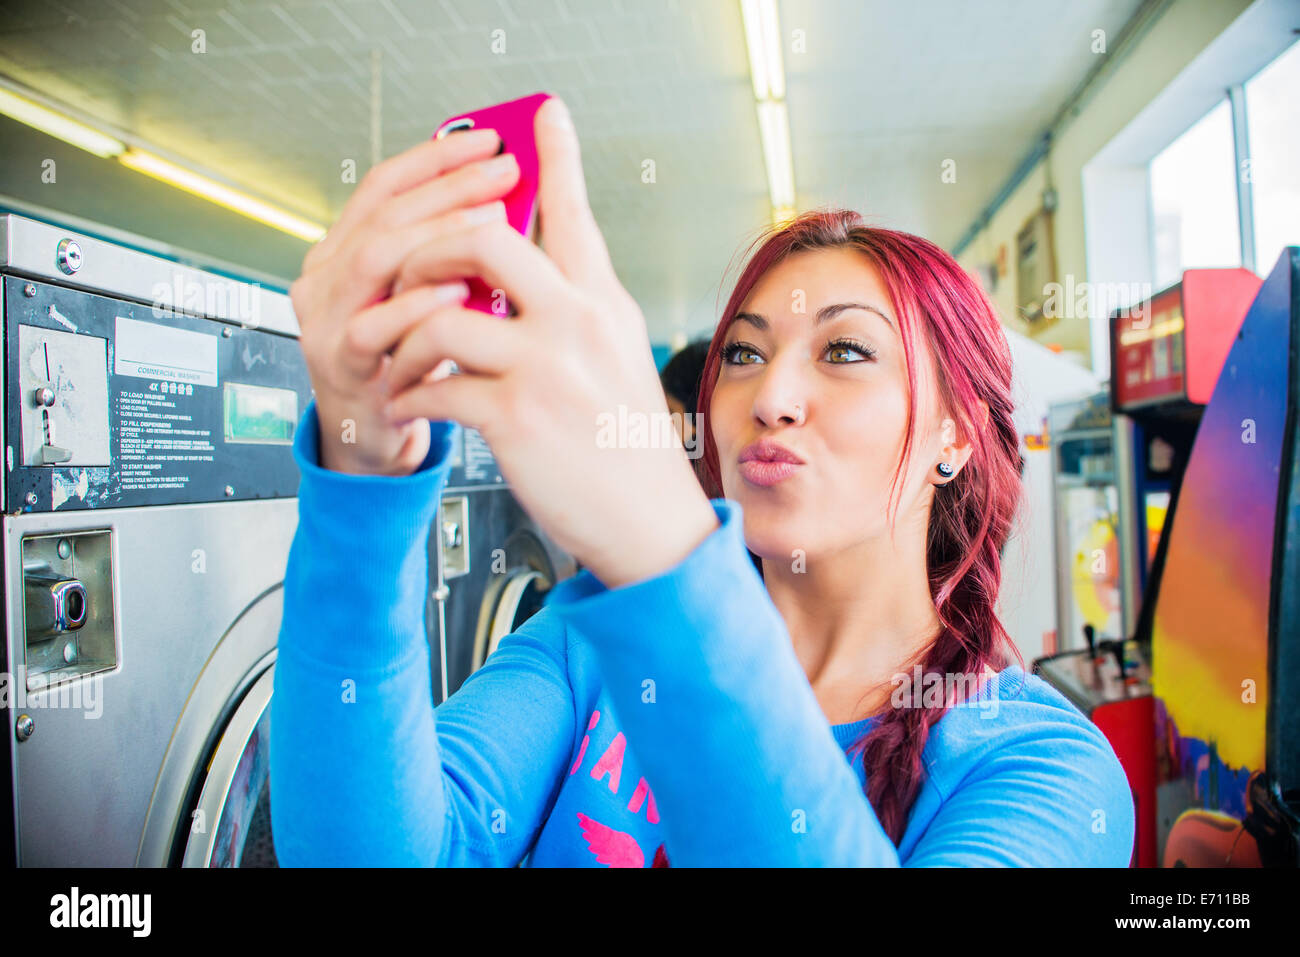 Young woman in laundromat, taking self portrait with smartphone - Stock Image